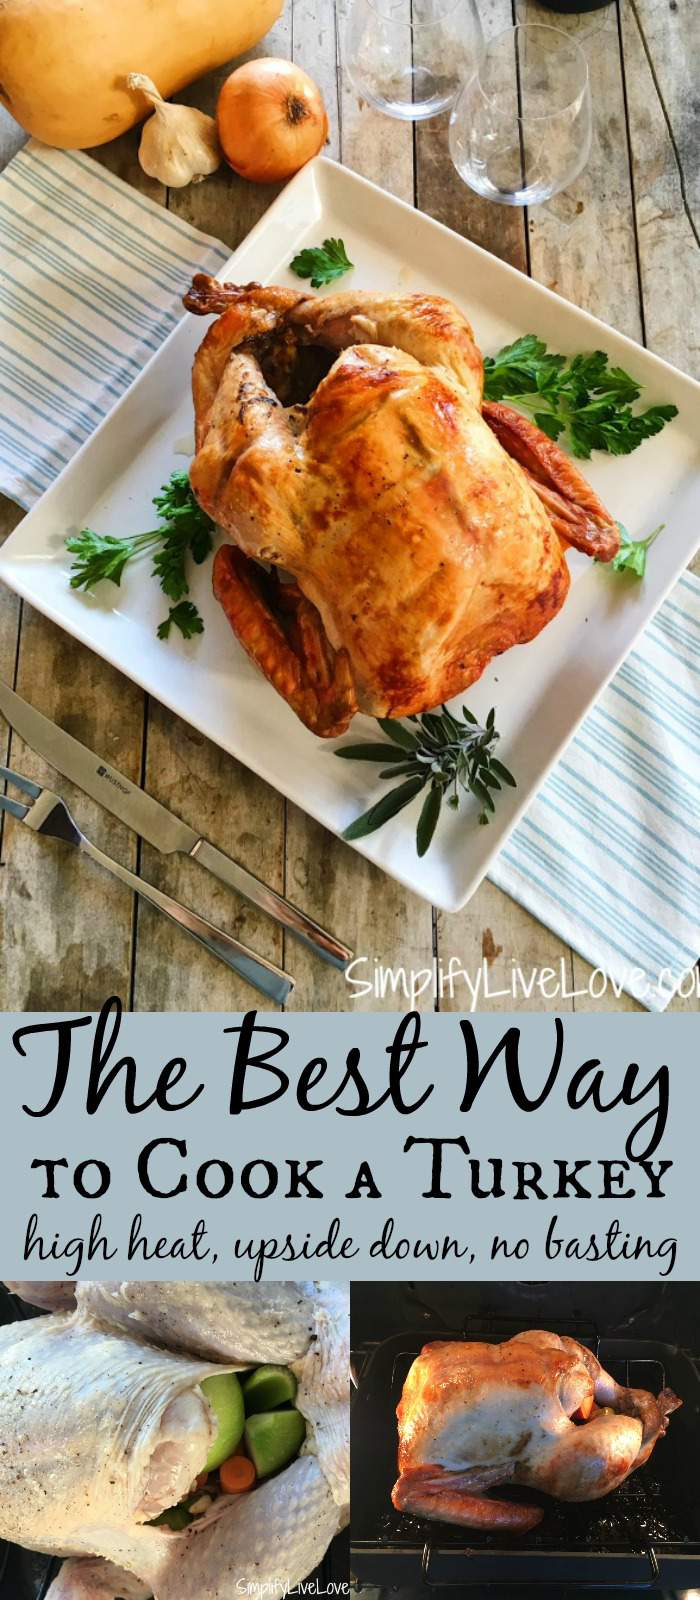 The most delicious turkey you will ever eat! Throw out what you've heard about cooking turkeys, and try high heat and upside down cooking this year! You will love not having to baste your turkey. #thanksgiving #turkey #christmasmeal